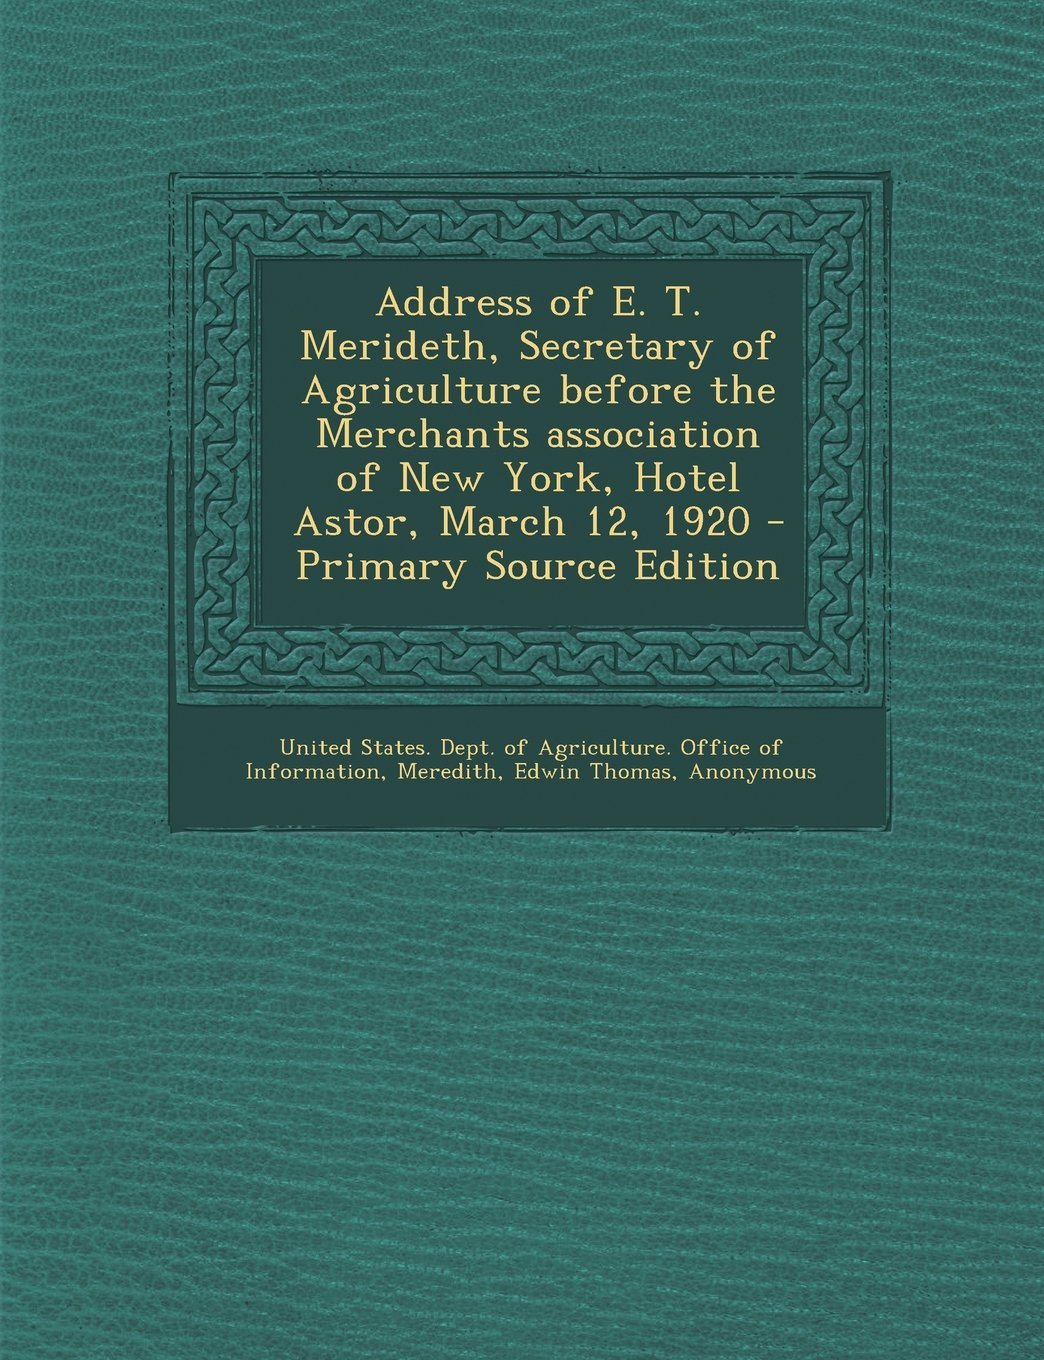 Read Online Address of E. T. Merideth, Secretary of Agriculture before the Merchants association of New York, Hotel Astor, March 12, 1920 - Primary Source Edition pdf